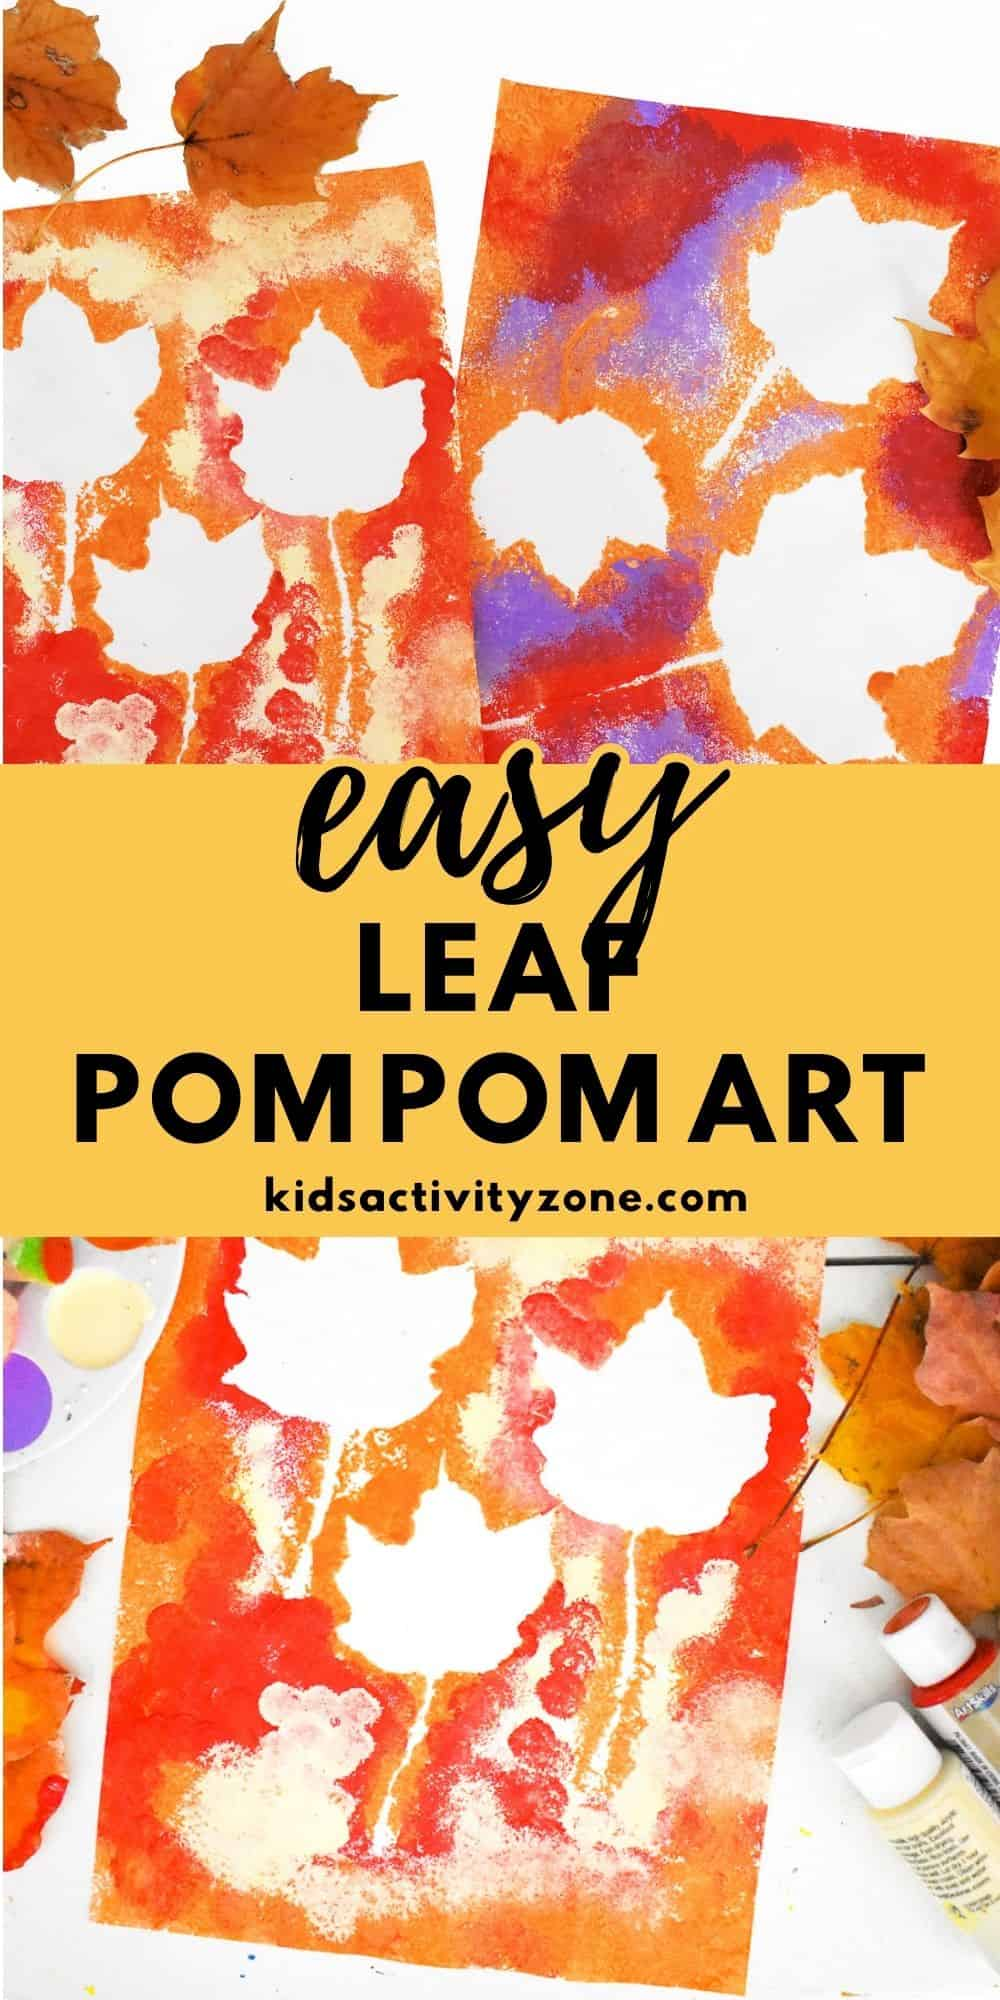 A quick and easy craft for toddlers and preschoolers perfect for fall. This Fall Leaf Pom Pom Painting Activity is easy to do with supplies around your house. Plus, it's a great for children's fine motor and sensory processing skills!